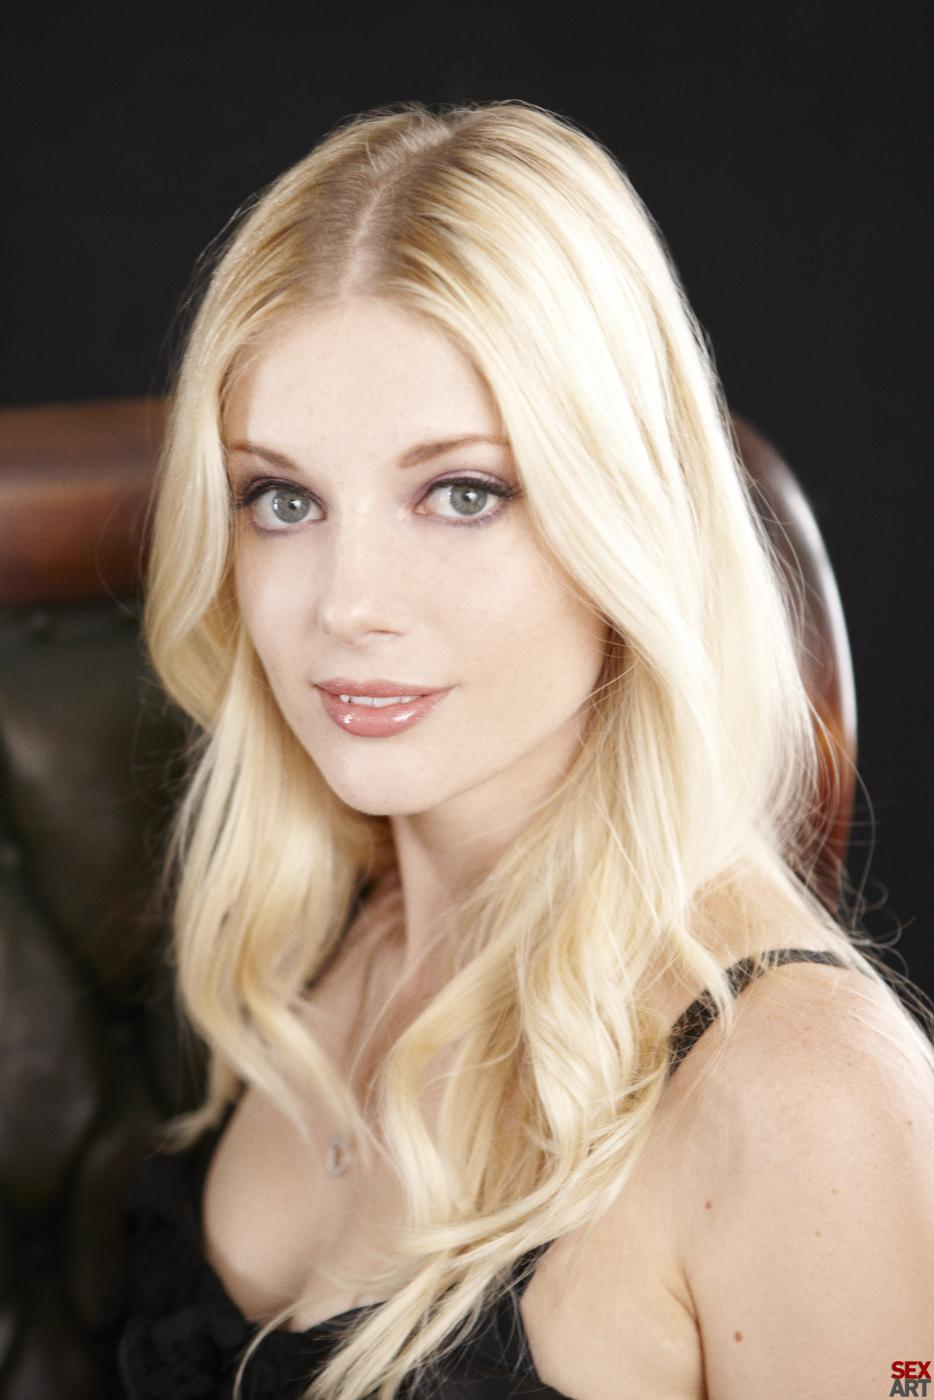 image Charlotte stokely and the investigator lexi belle